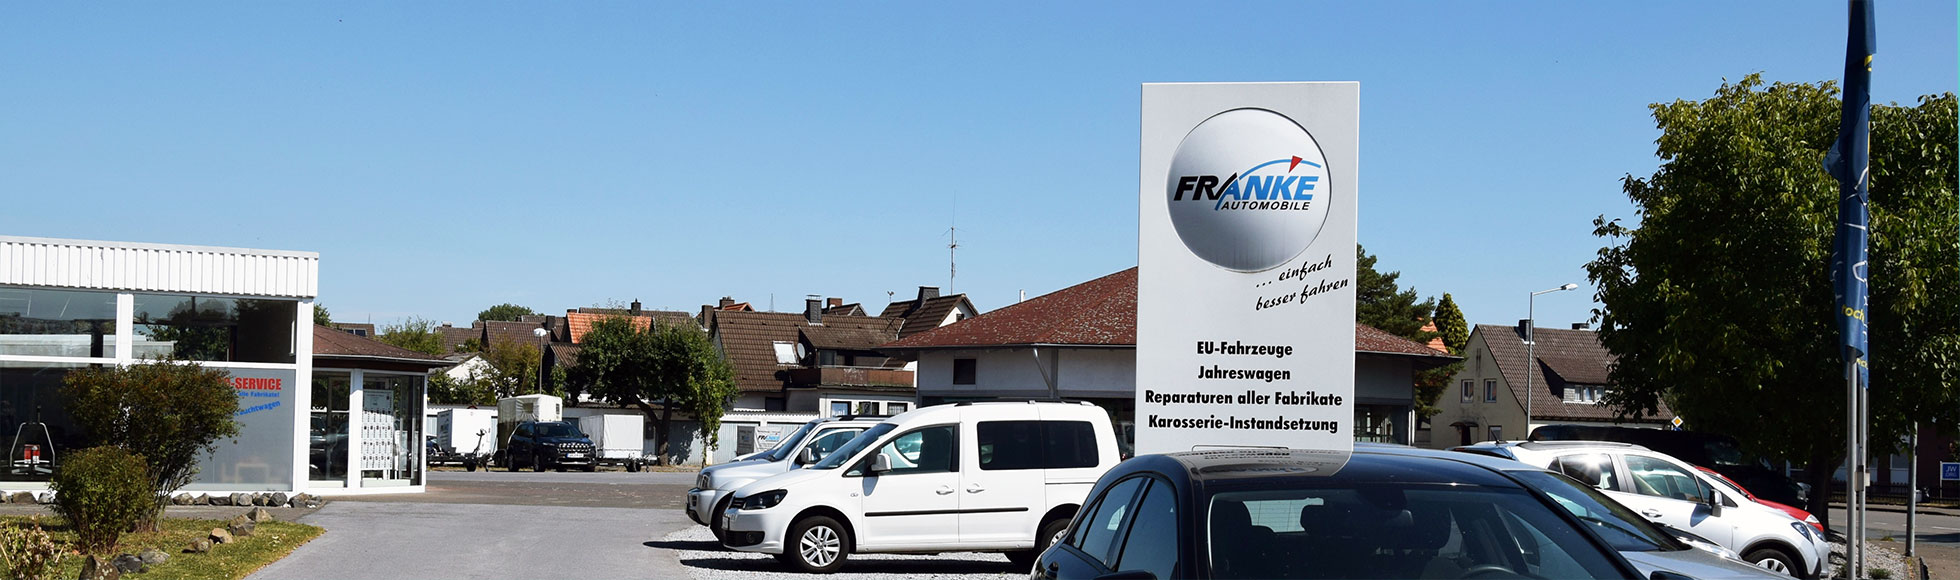 Franke Automobile